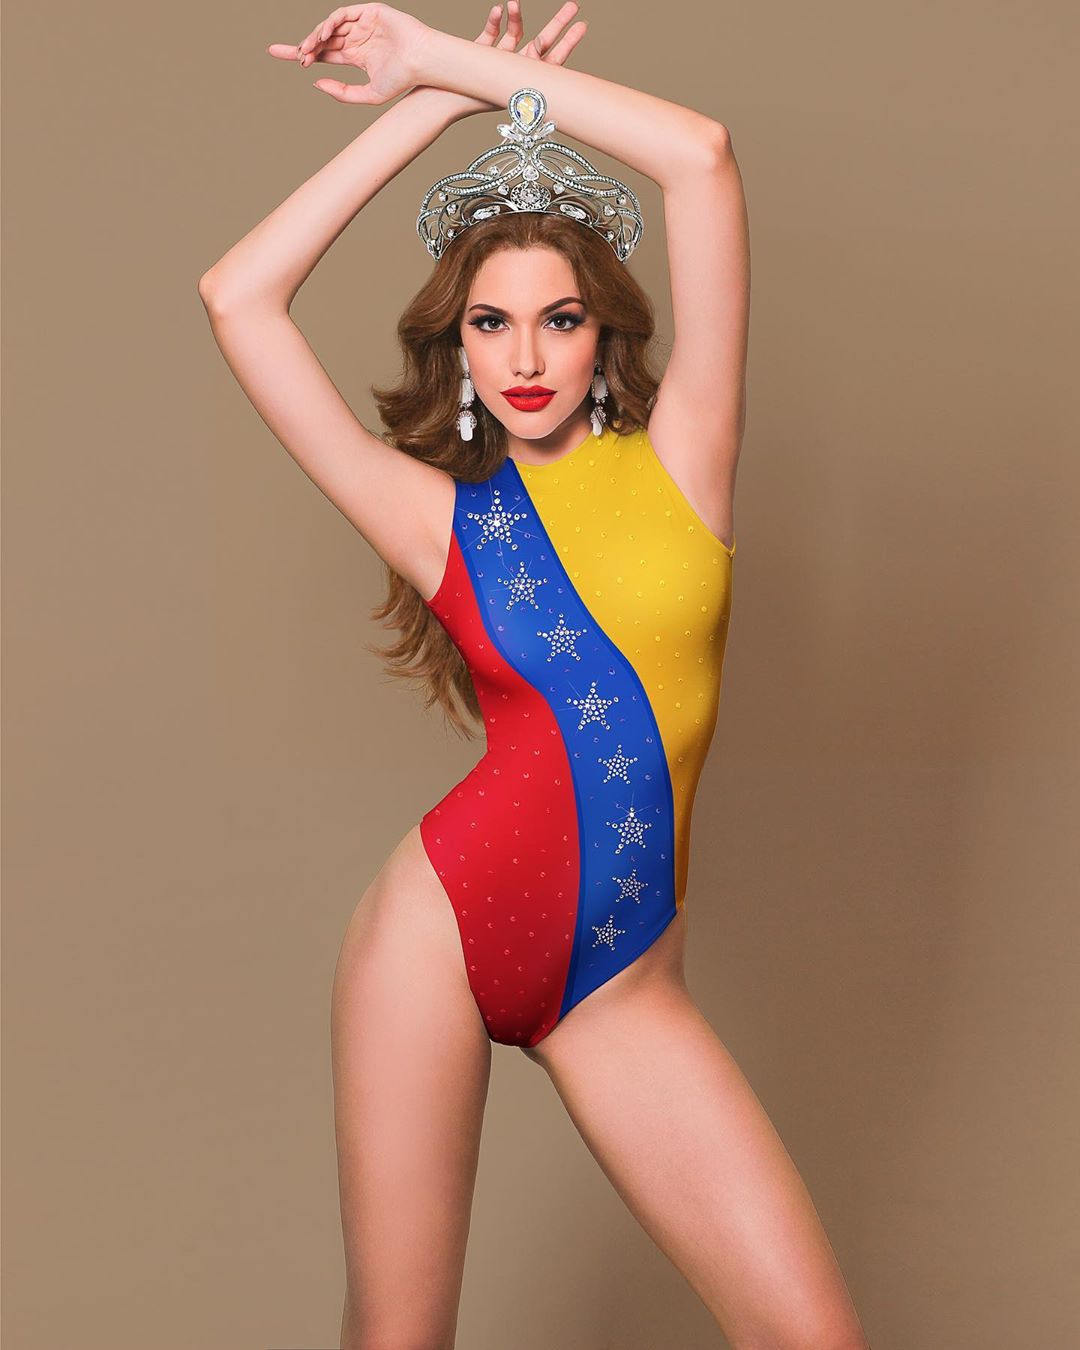 lourdes valentina figuera, miss grand international 2019. - Página 4 70514210